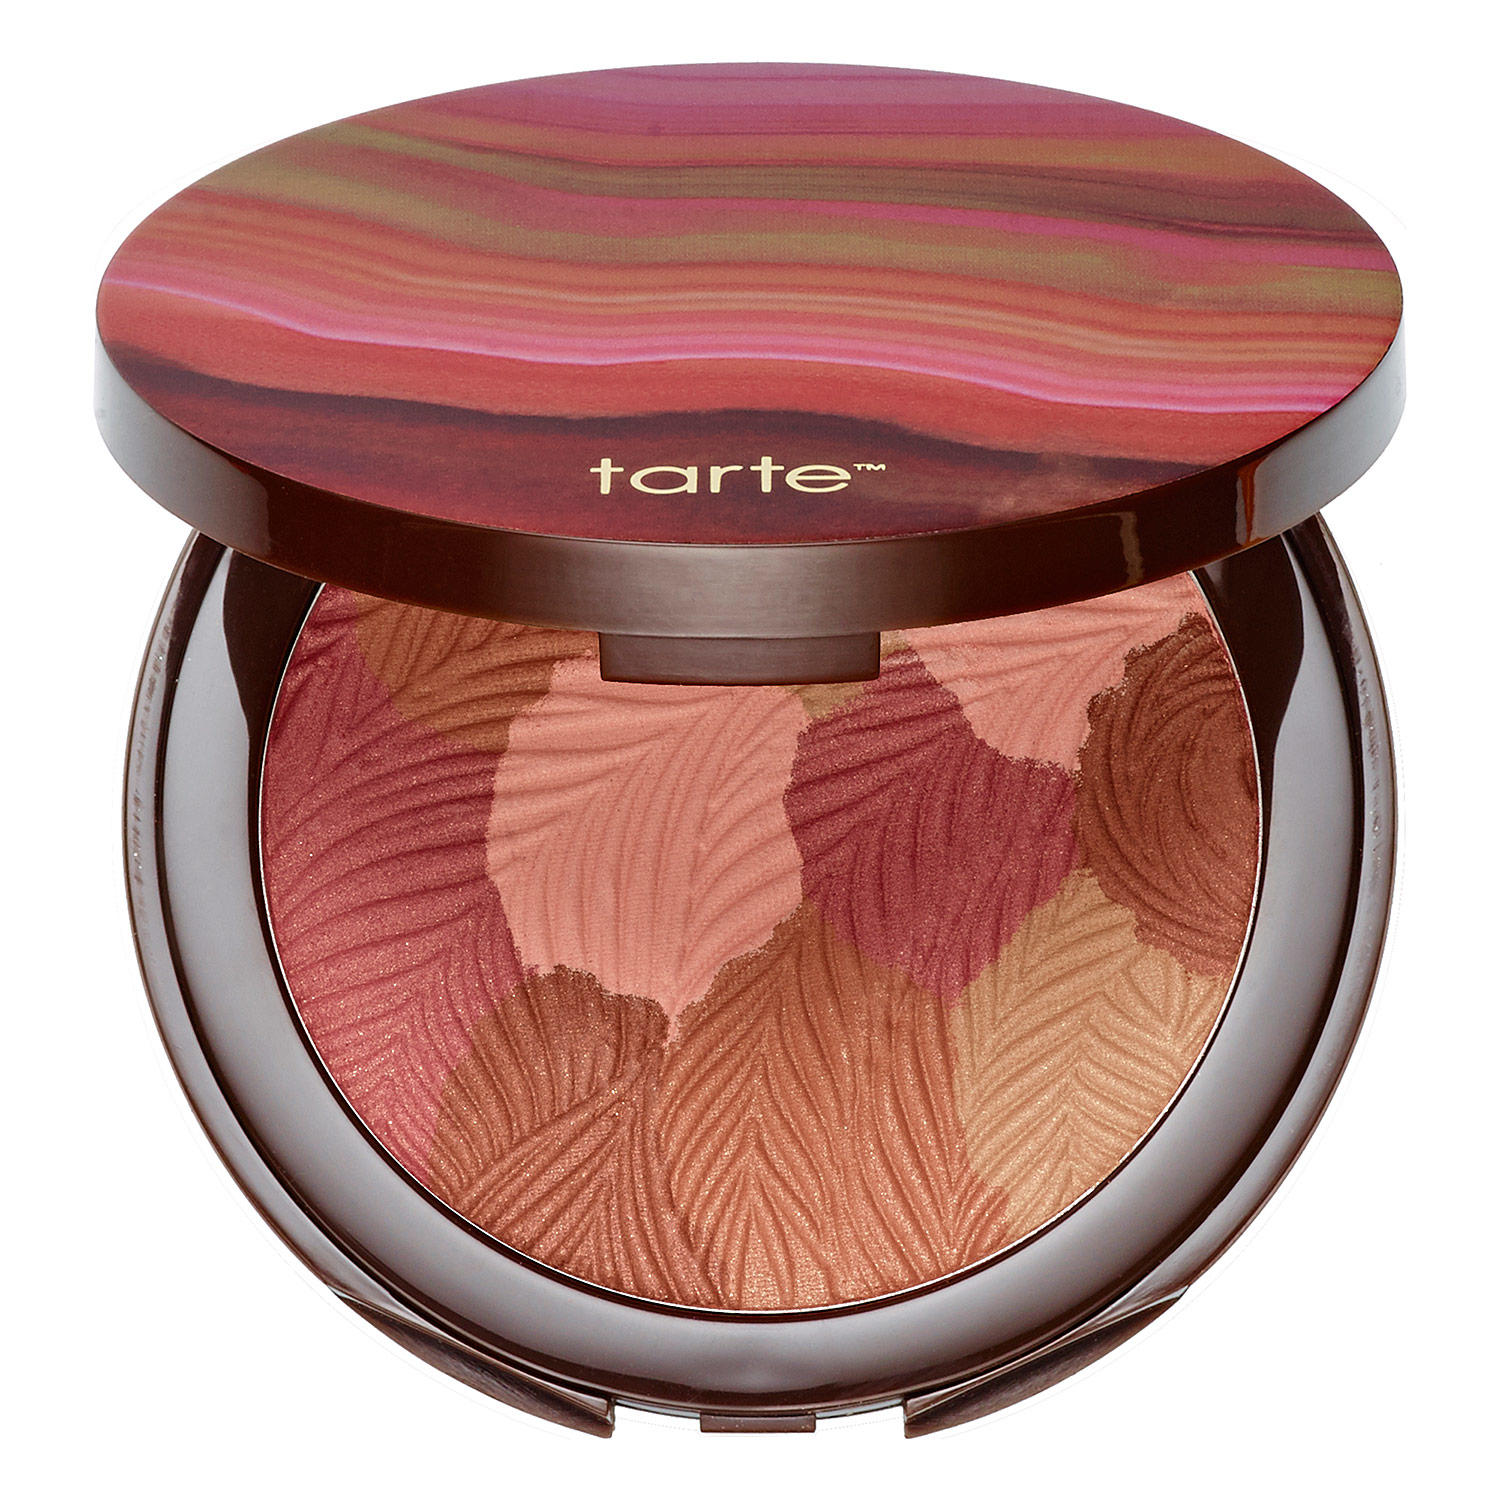 Tarte Colored Clay Bronzer Blush Park Ave Princess Pink Bronze